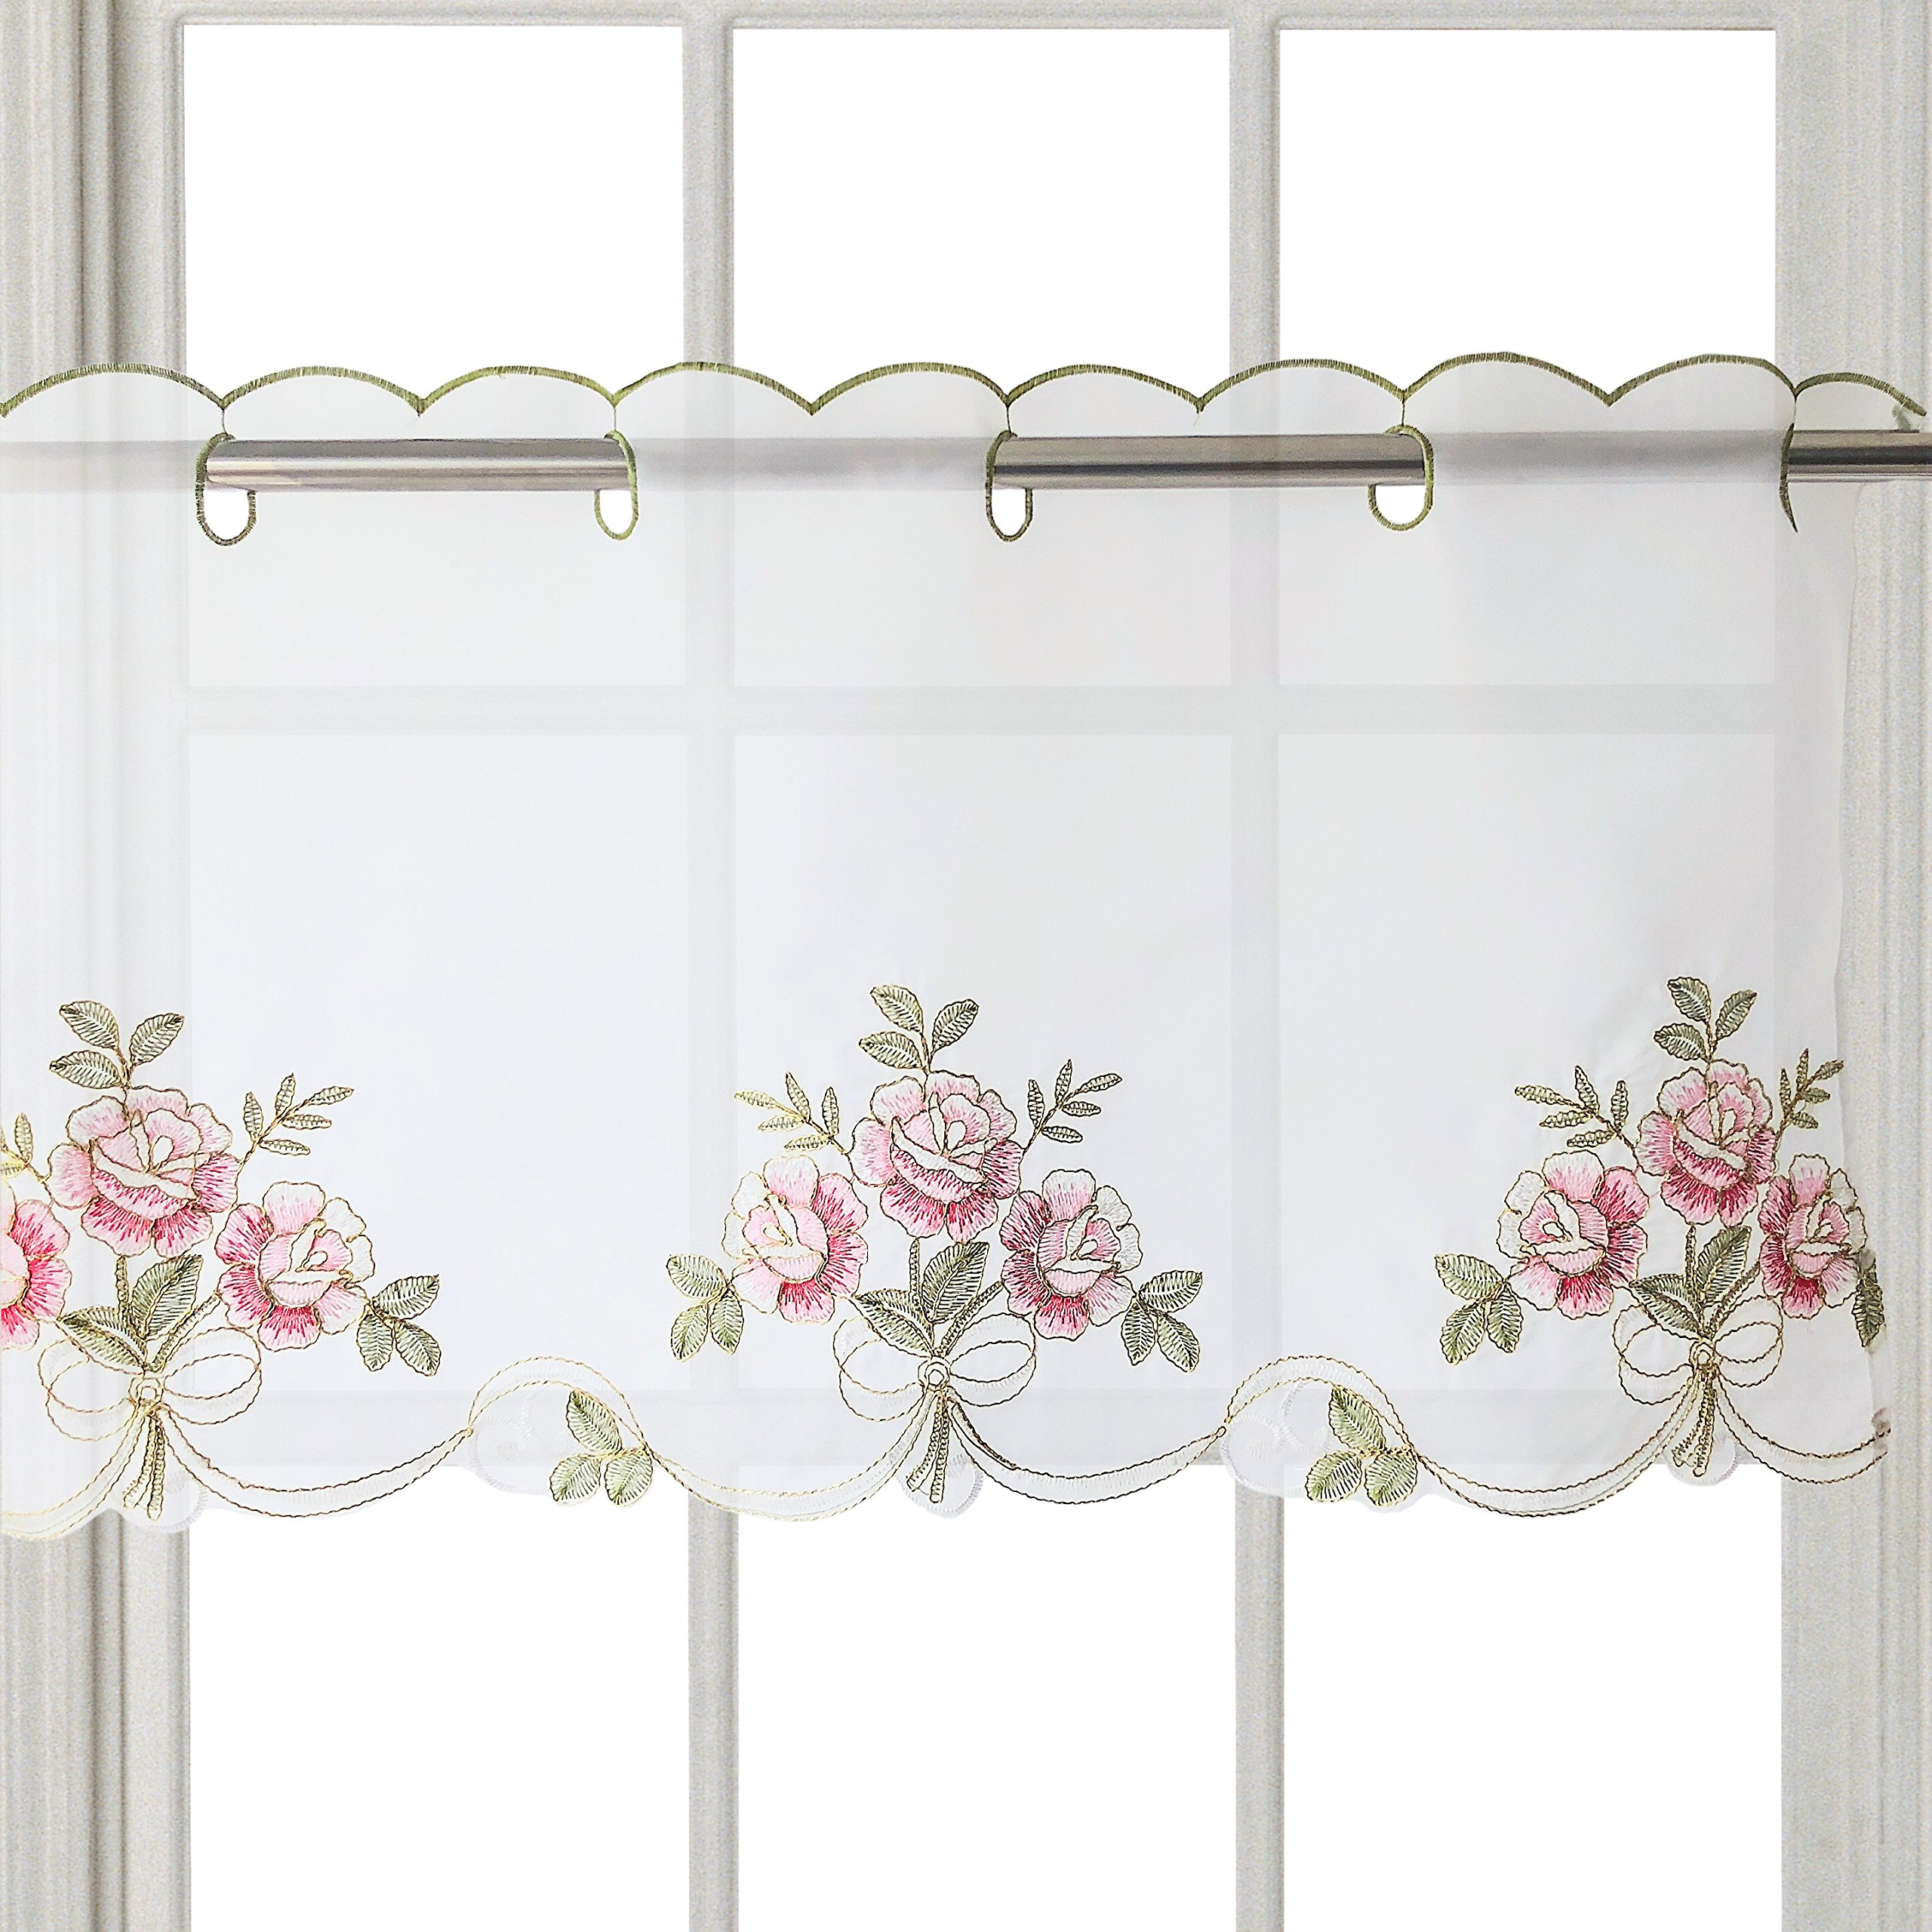 WEMAY Panel Animal Embroidery Pastoral Style Cafe Curtain Kitchen Curtain Floral Window Curtain Valance(Flower W56 X L24 inch 1PC)